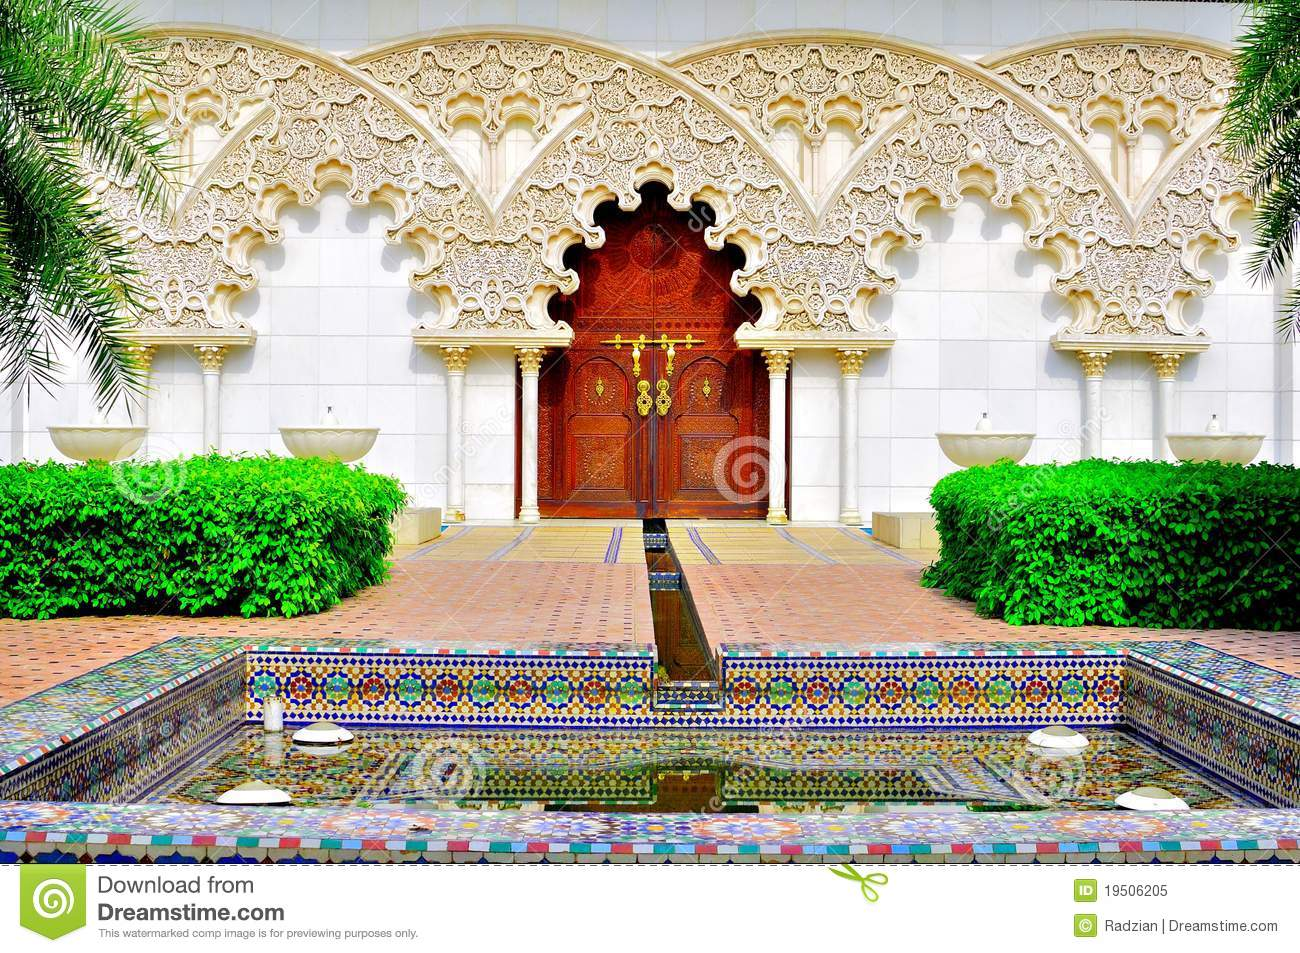 Garden gate plans - Moroccan Garden And Architecture Royalty Free Stock Photo